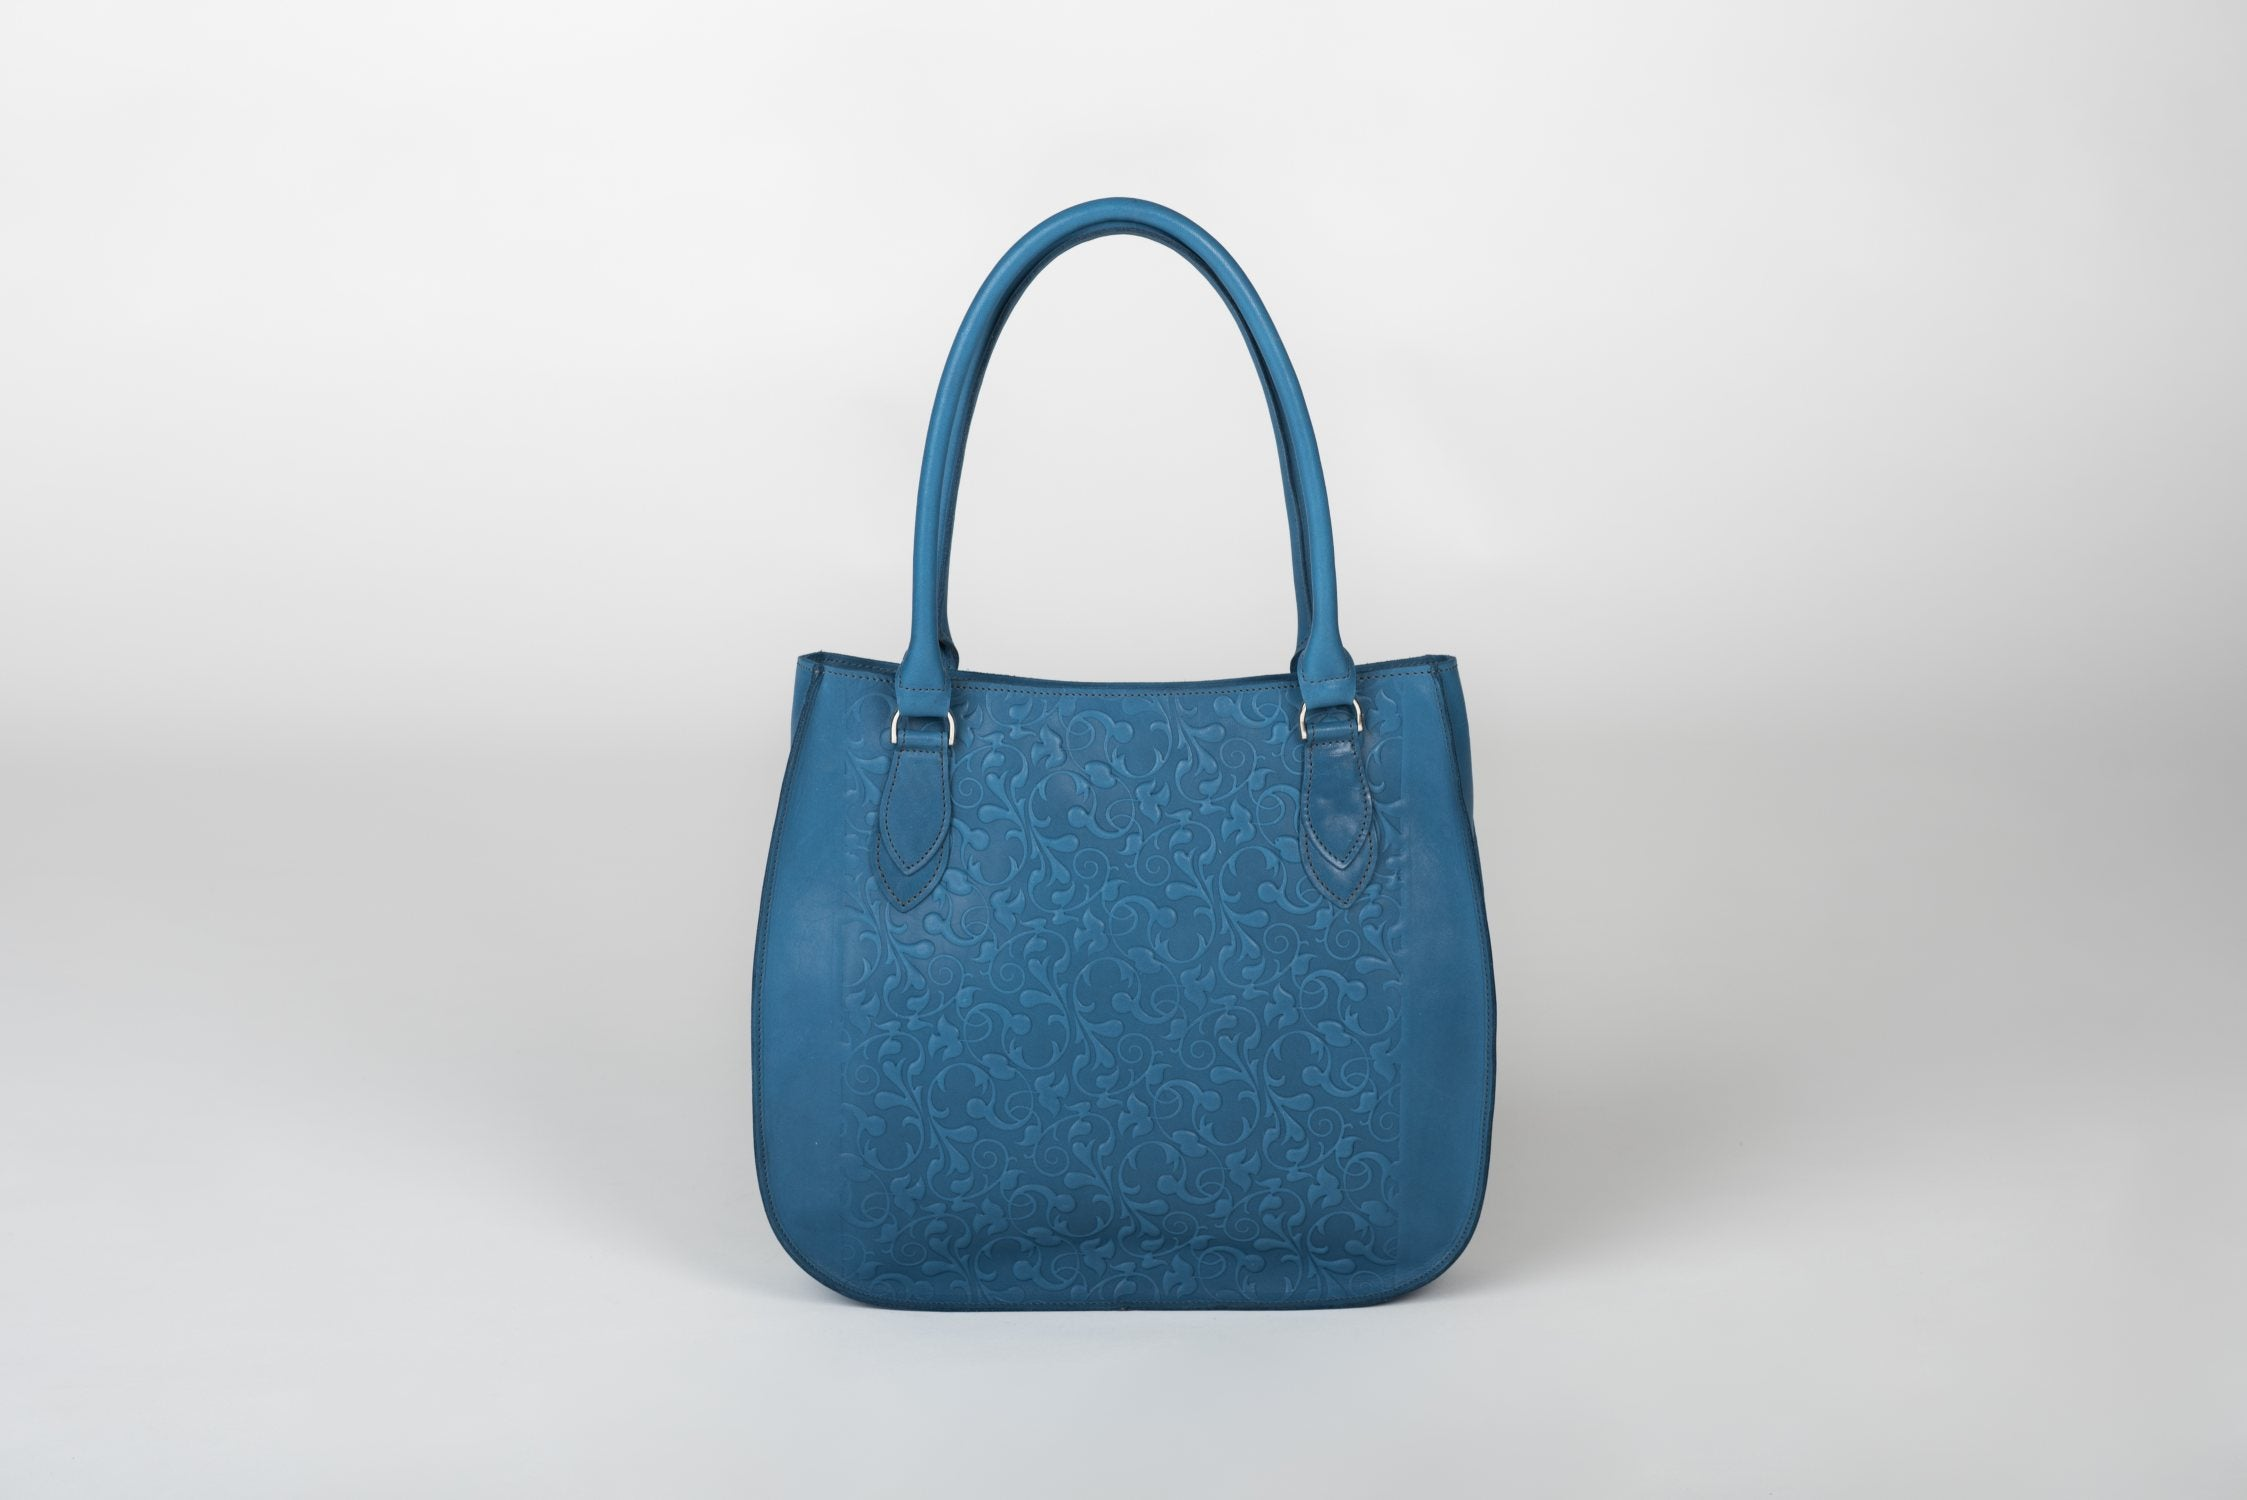 Handmade Leather Bag in Blue - Venice